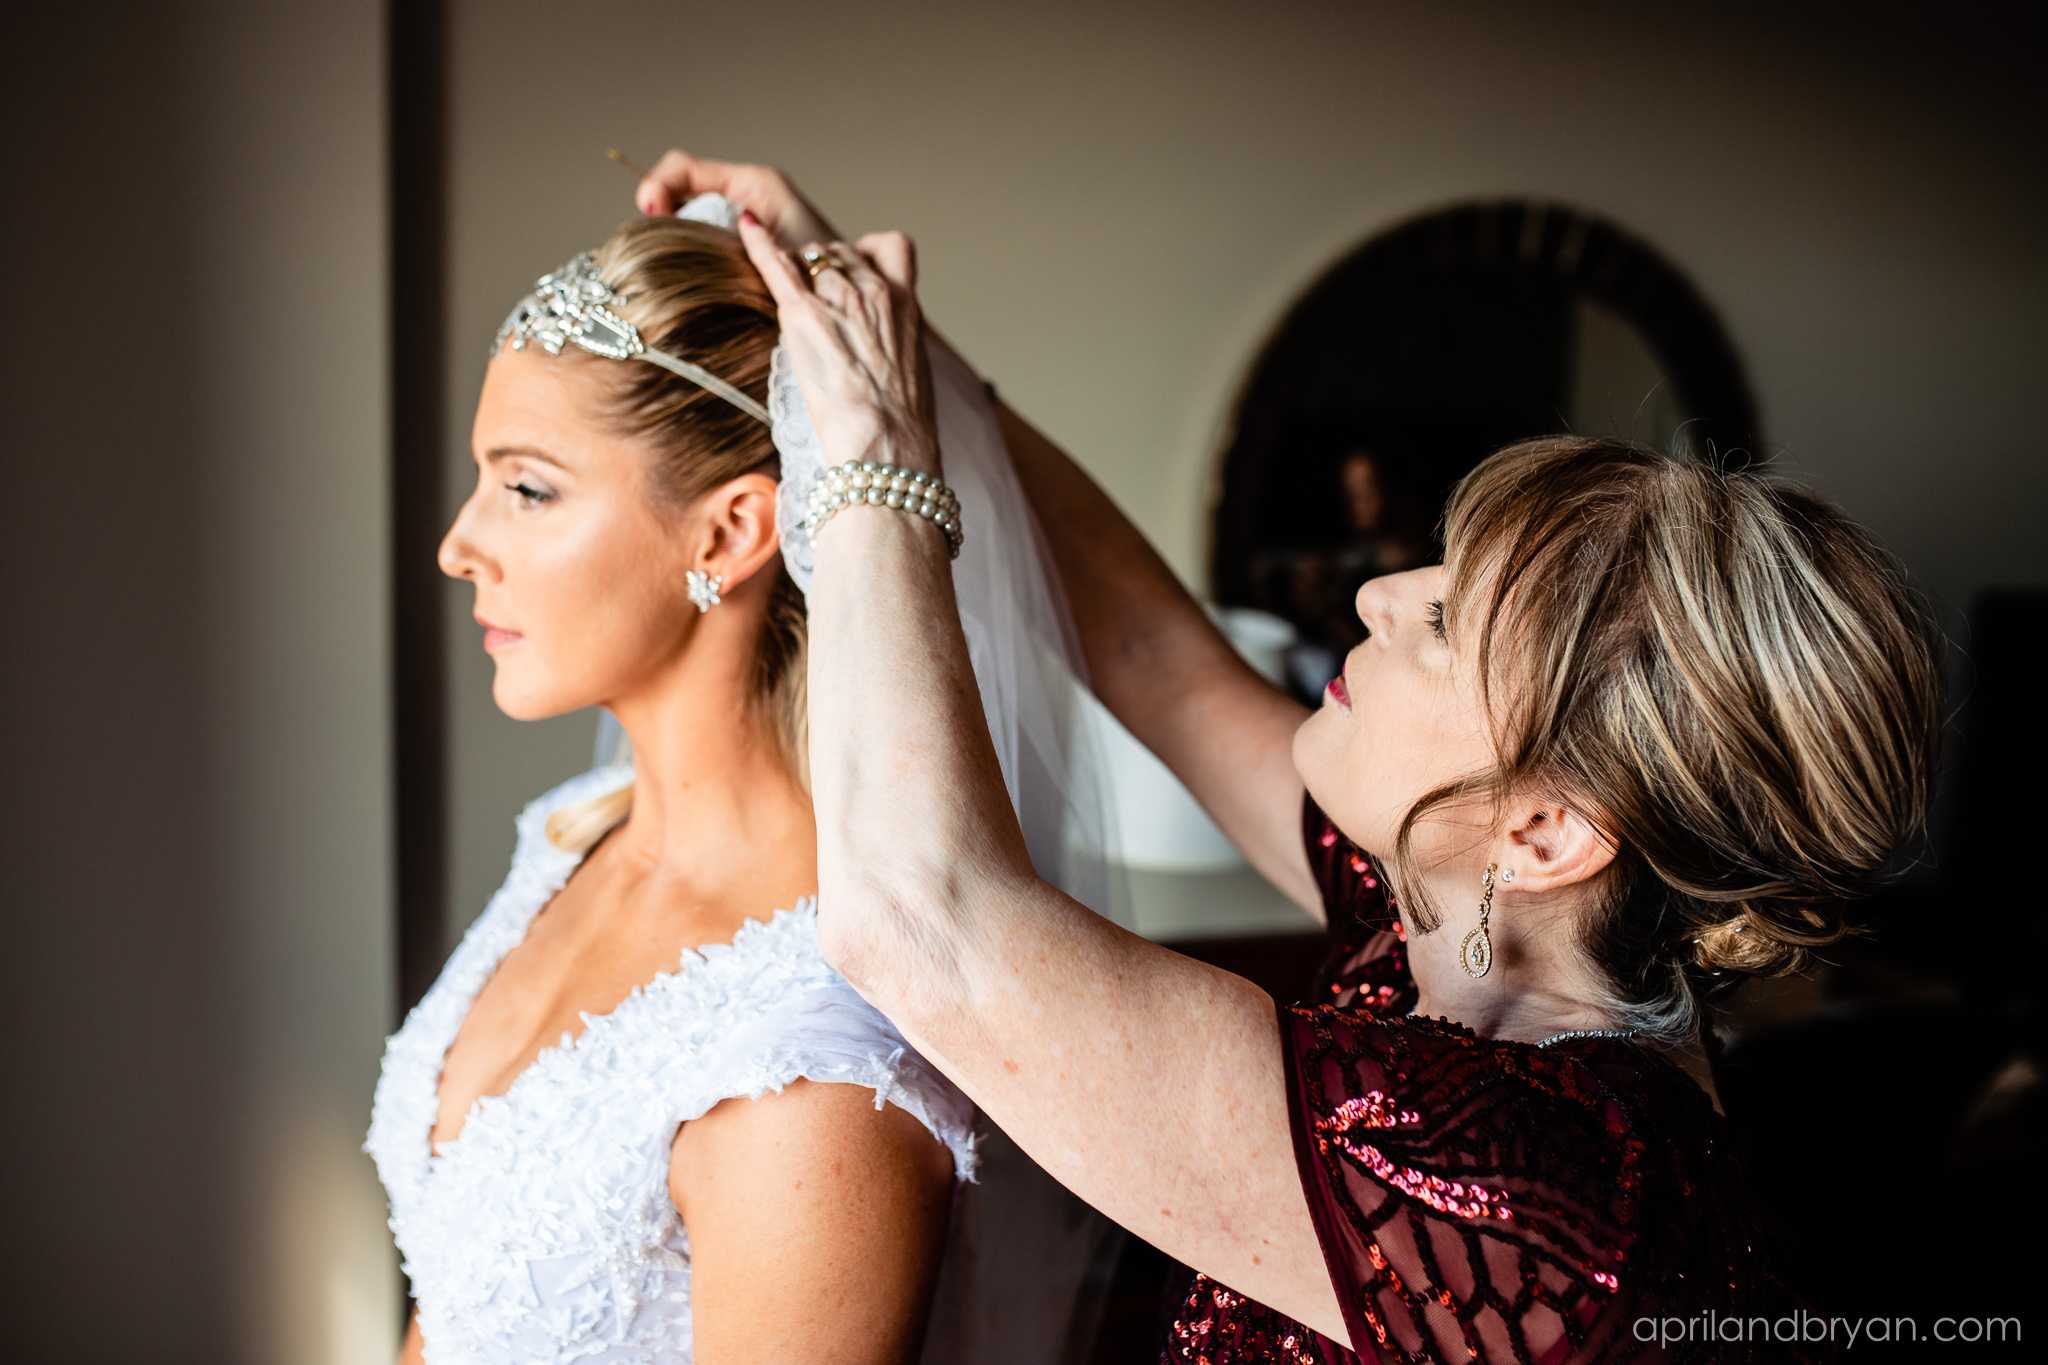 The final touches while putting on the veil have arrived. Nicholas and Rebecca Fasnacht tie the not at Tellus360 on November 1, 2019. Captured by April & Bryan Photography and featured on Dream Weddings.